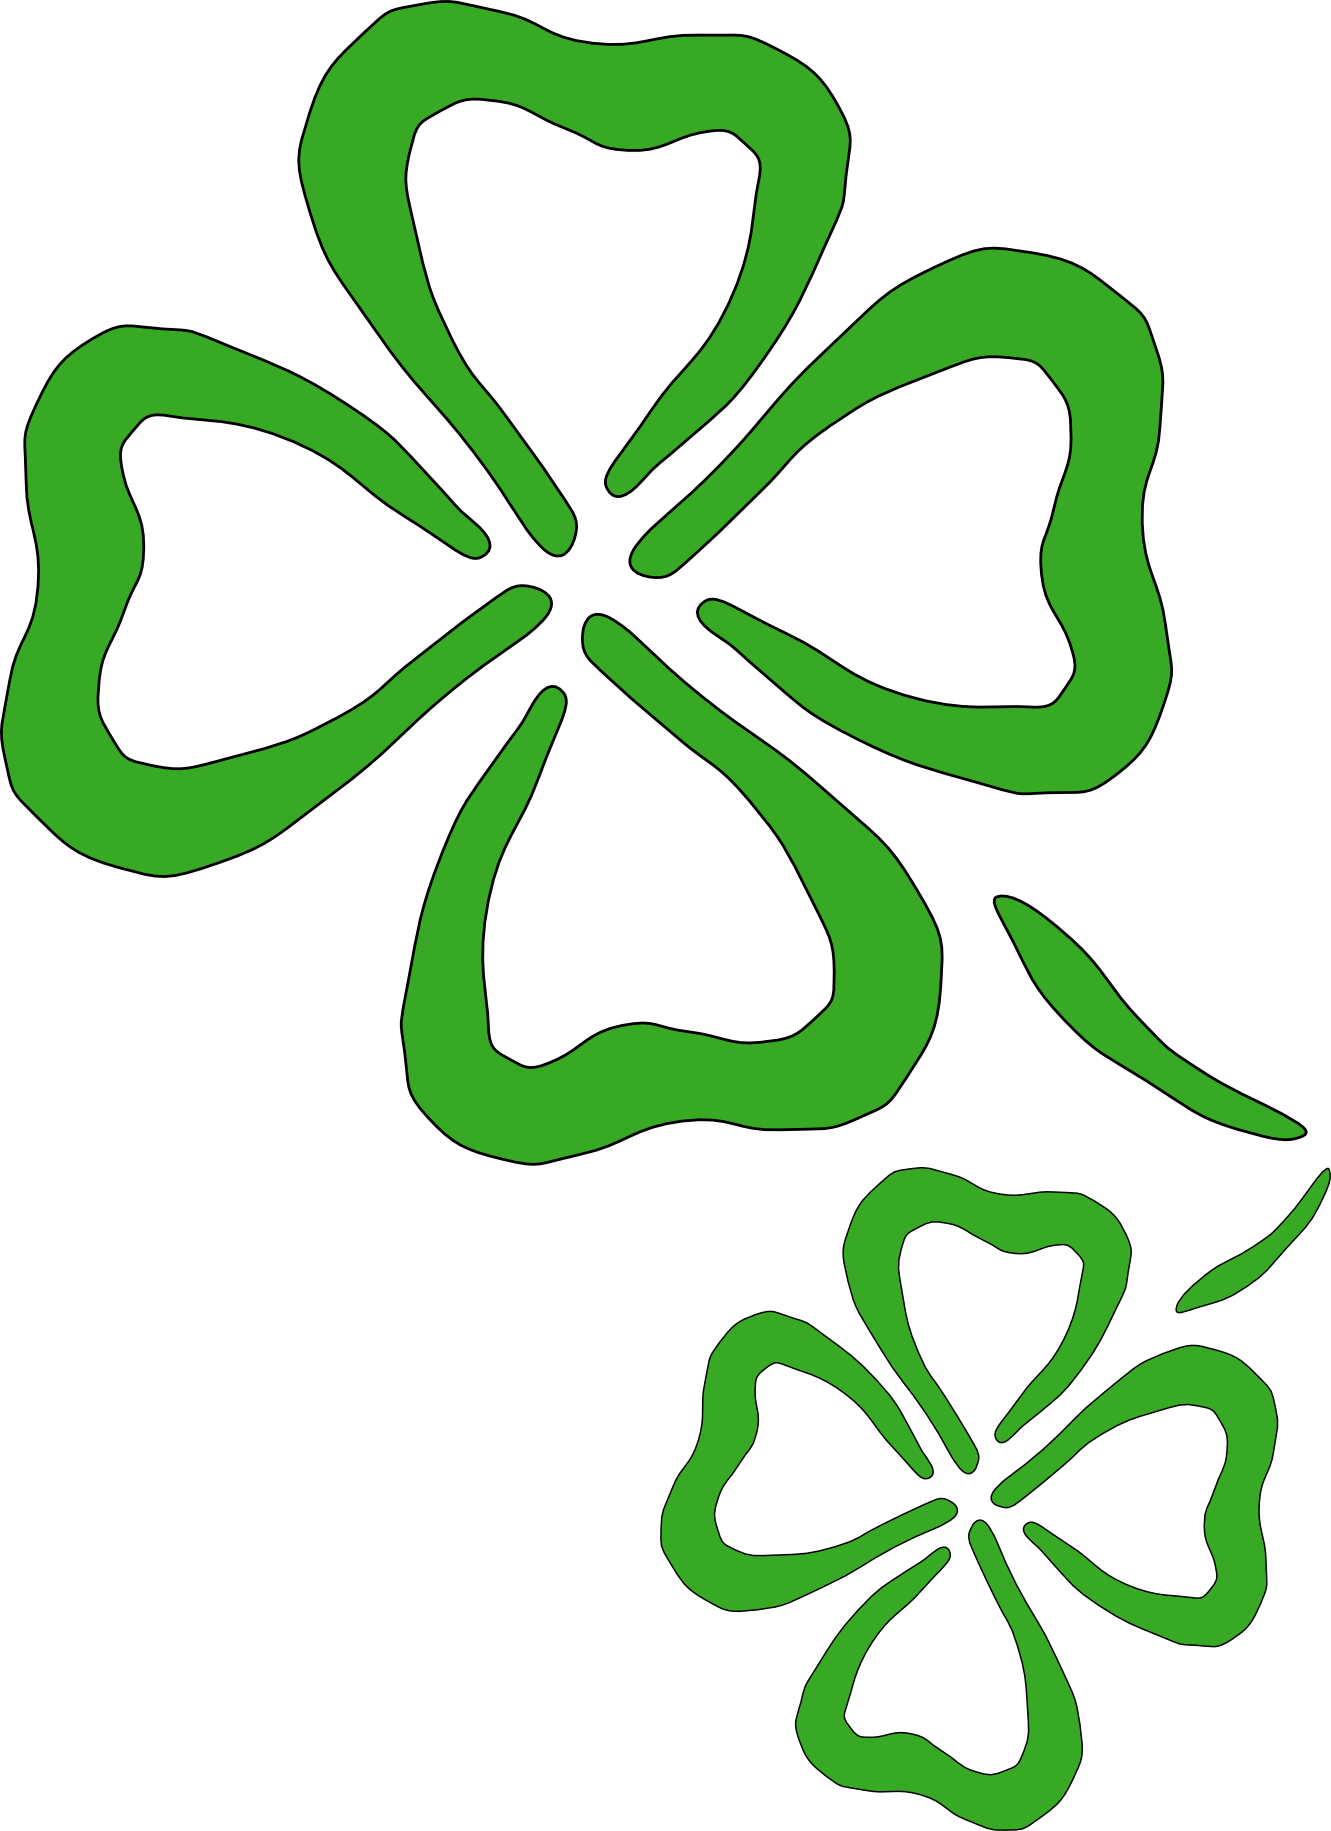 shamrock 3 coloring book colouring SVG